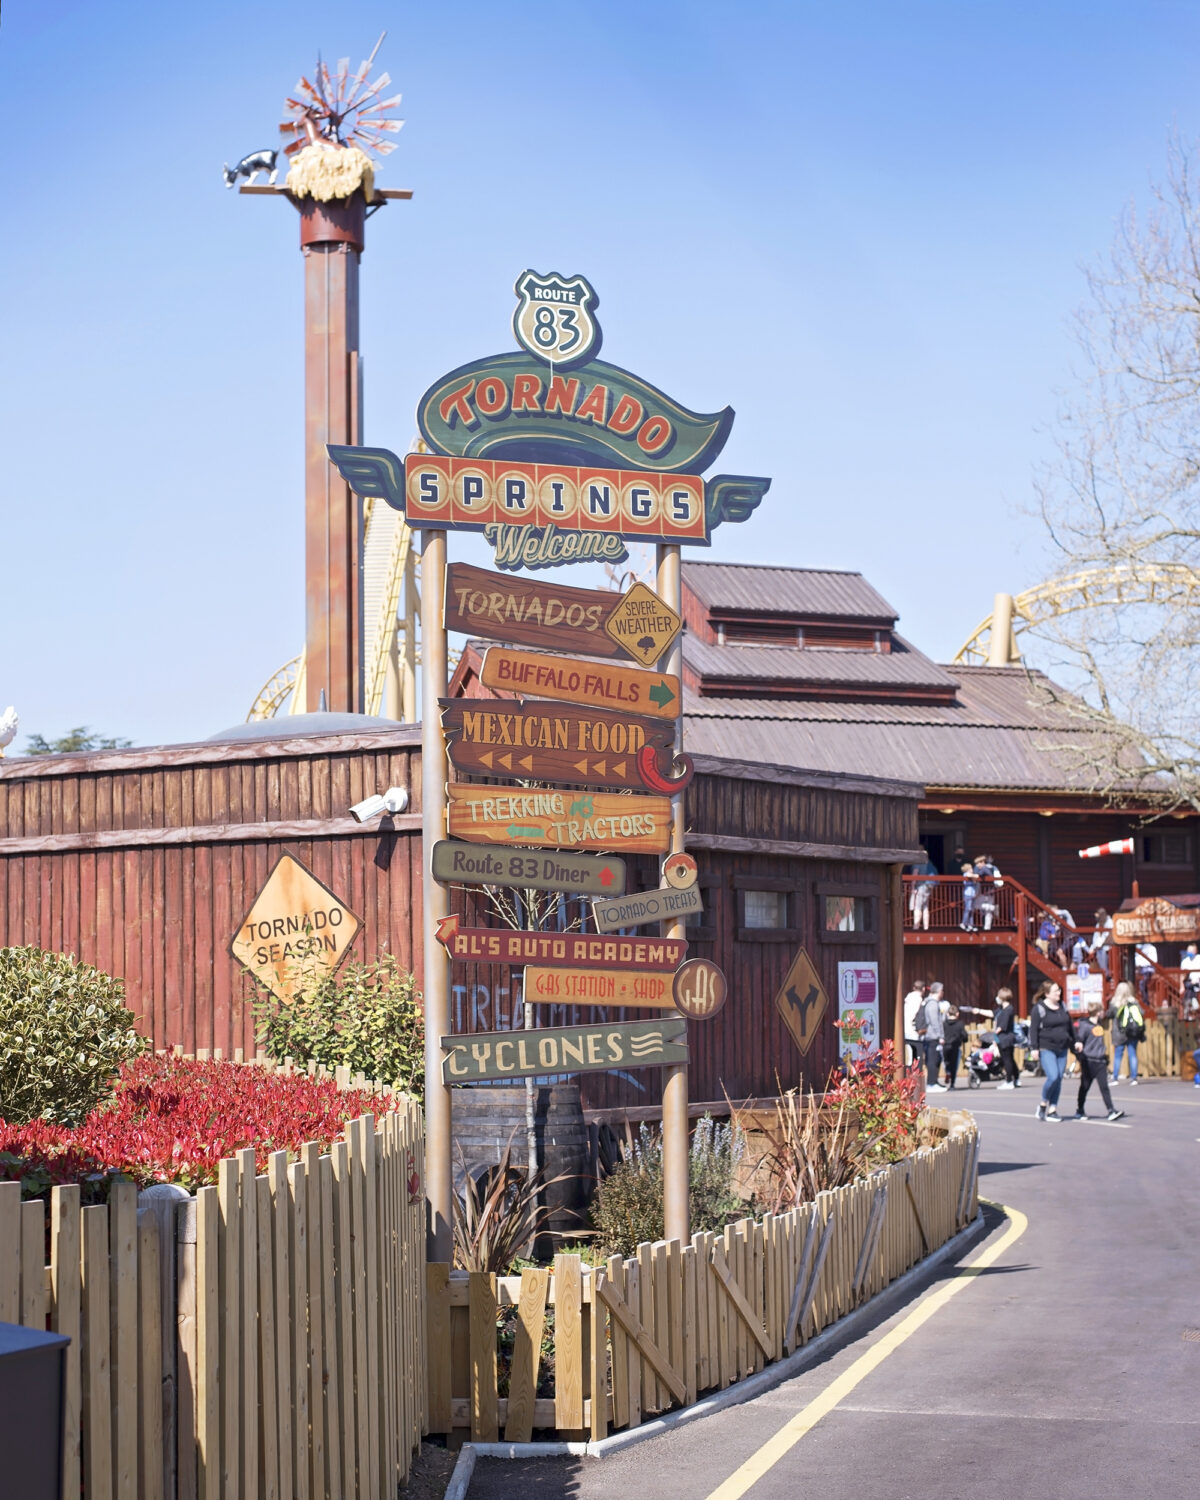 Image shows a directional signpost in Paultons Park Tornado Springs. Made of wood, the names of the rides in the theme park are listed on each arrow.